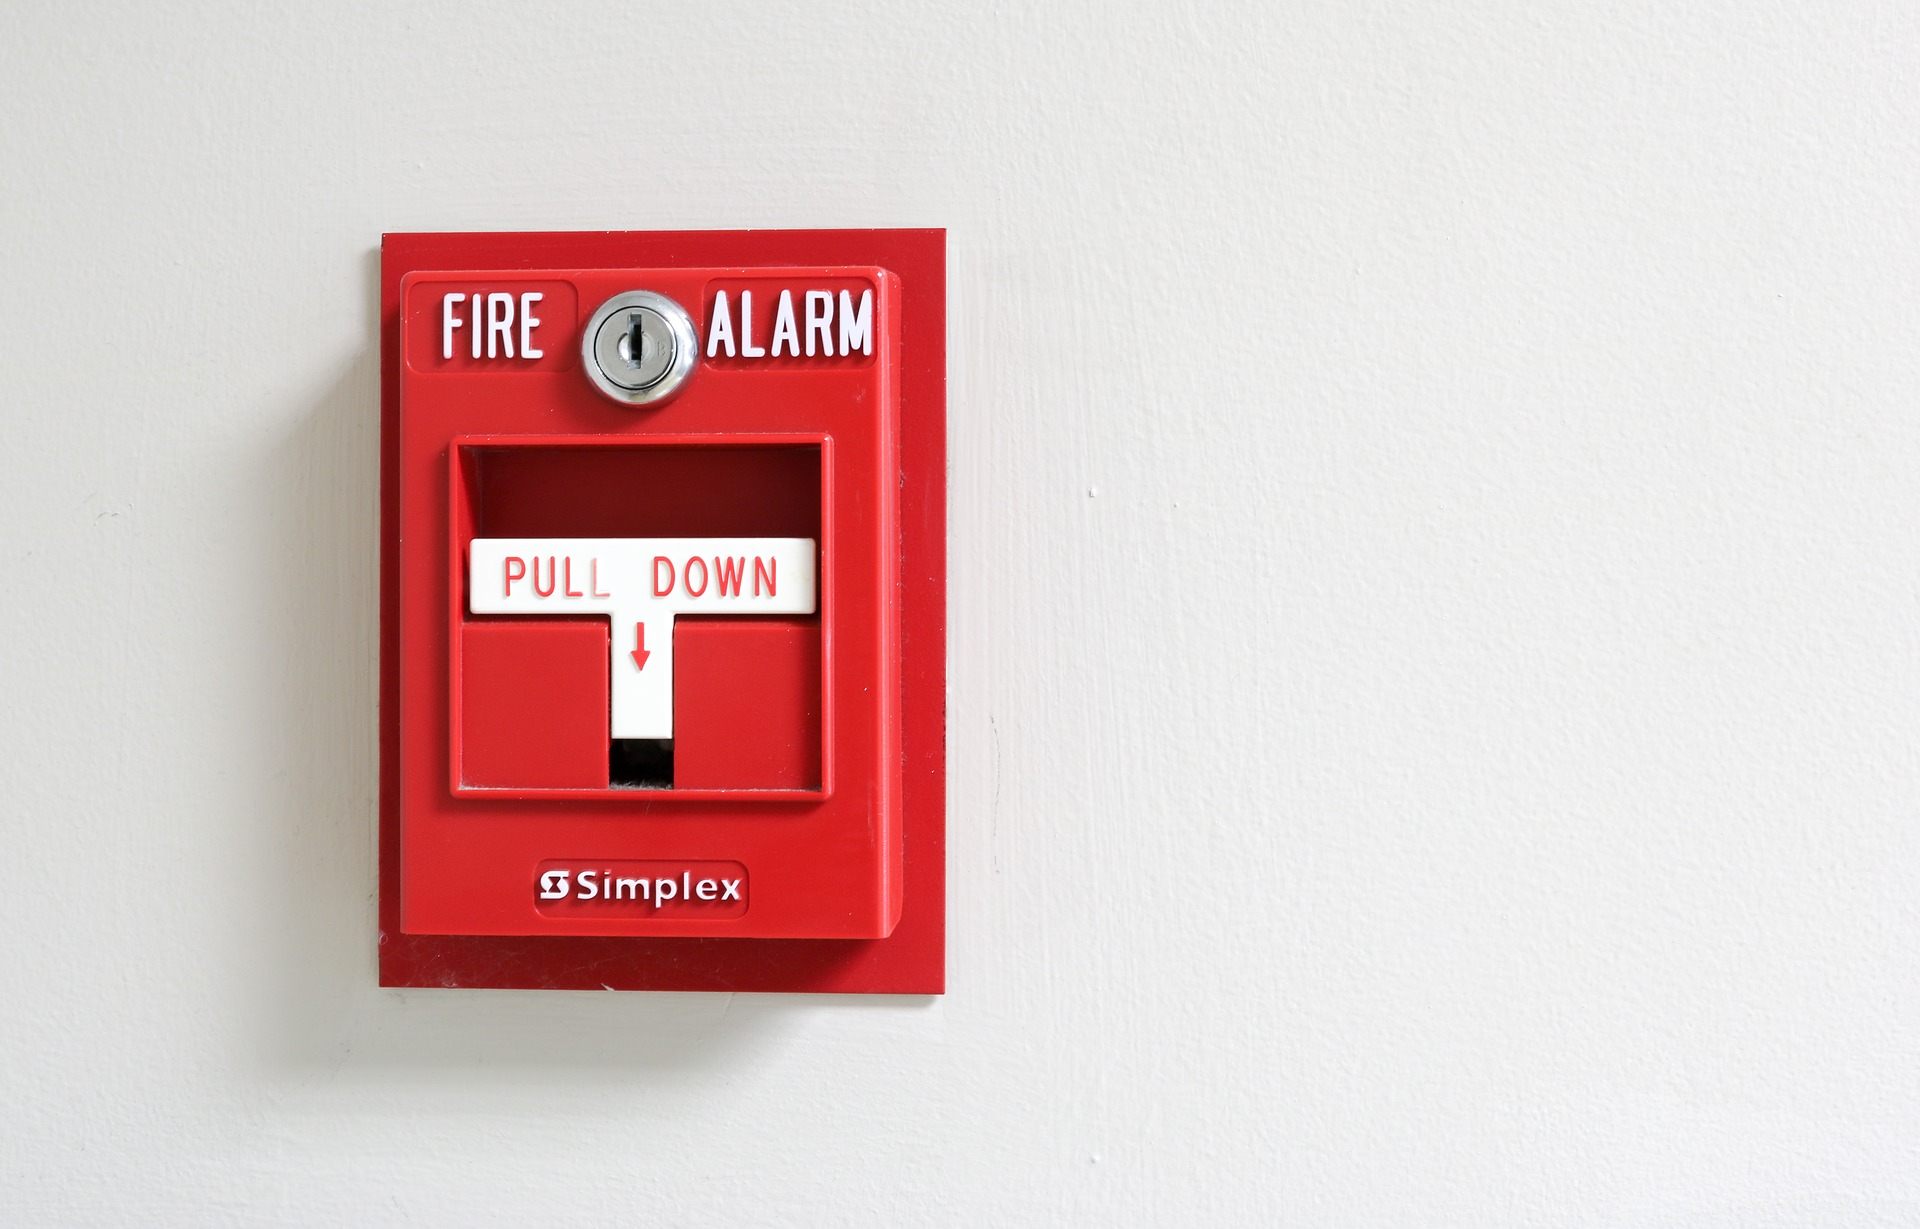 hight resolution of fire alarm services commercial fire safety alarm compression company keller fire safety